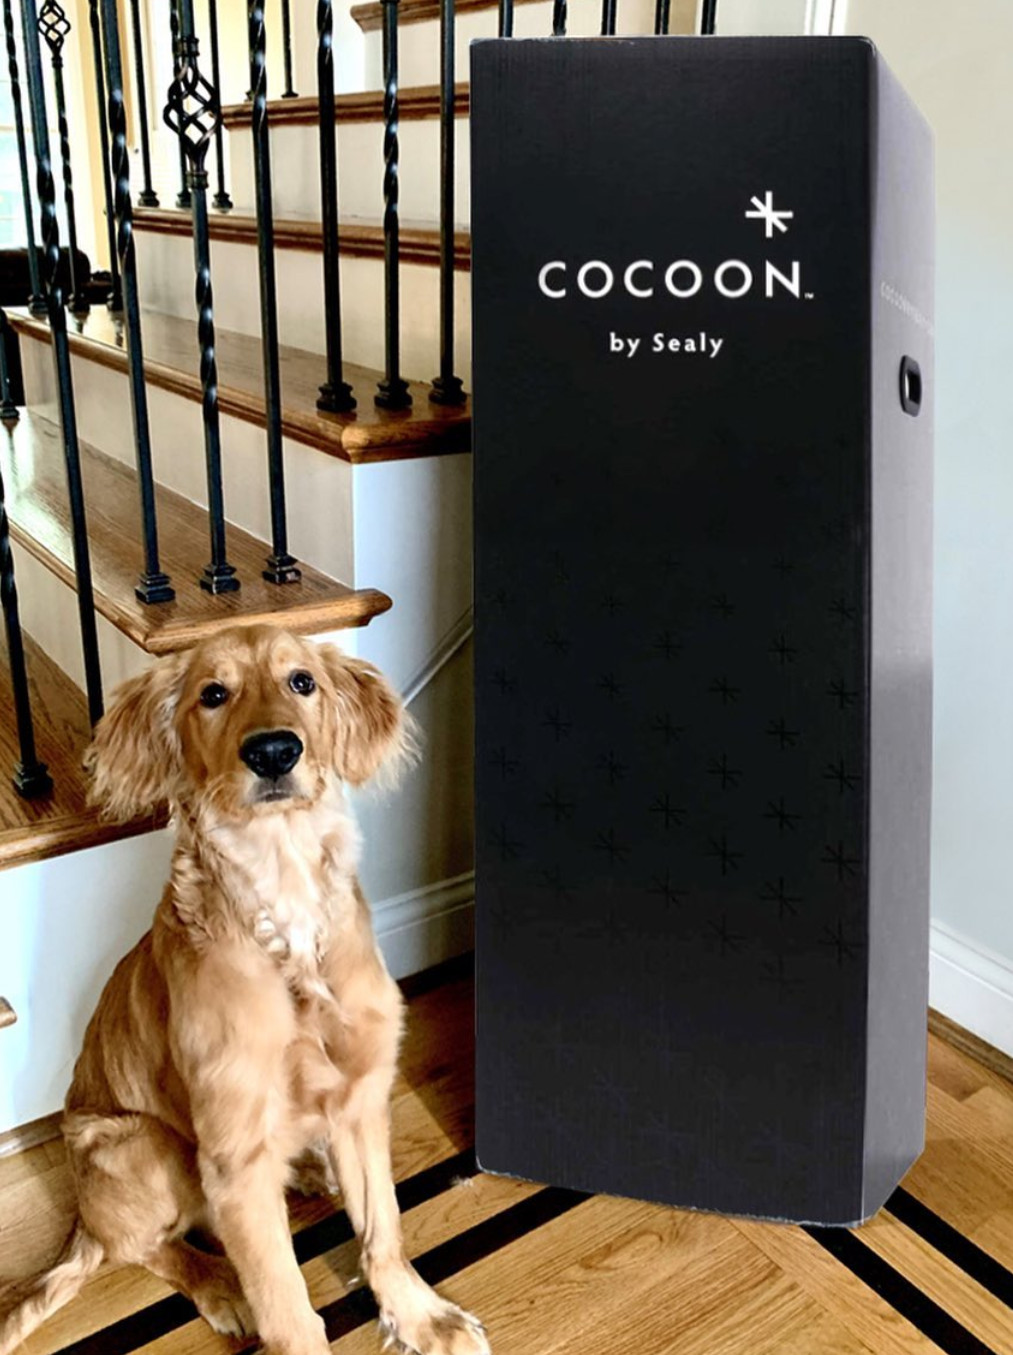 cocoon mattress box